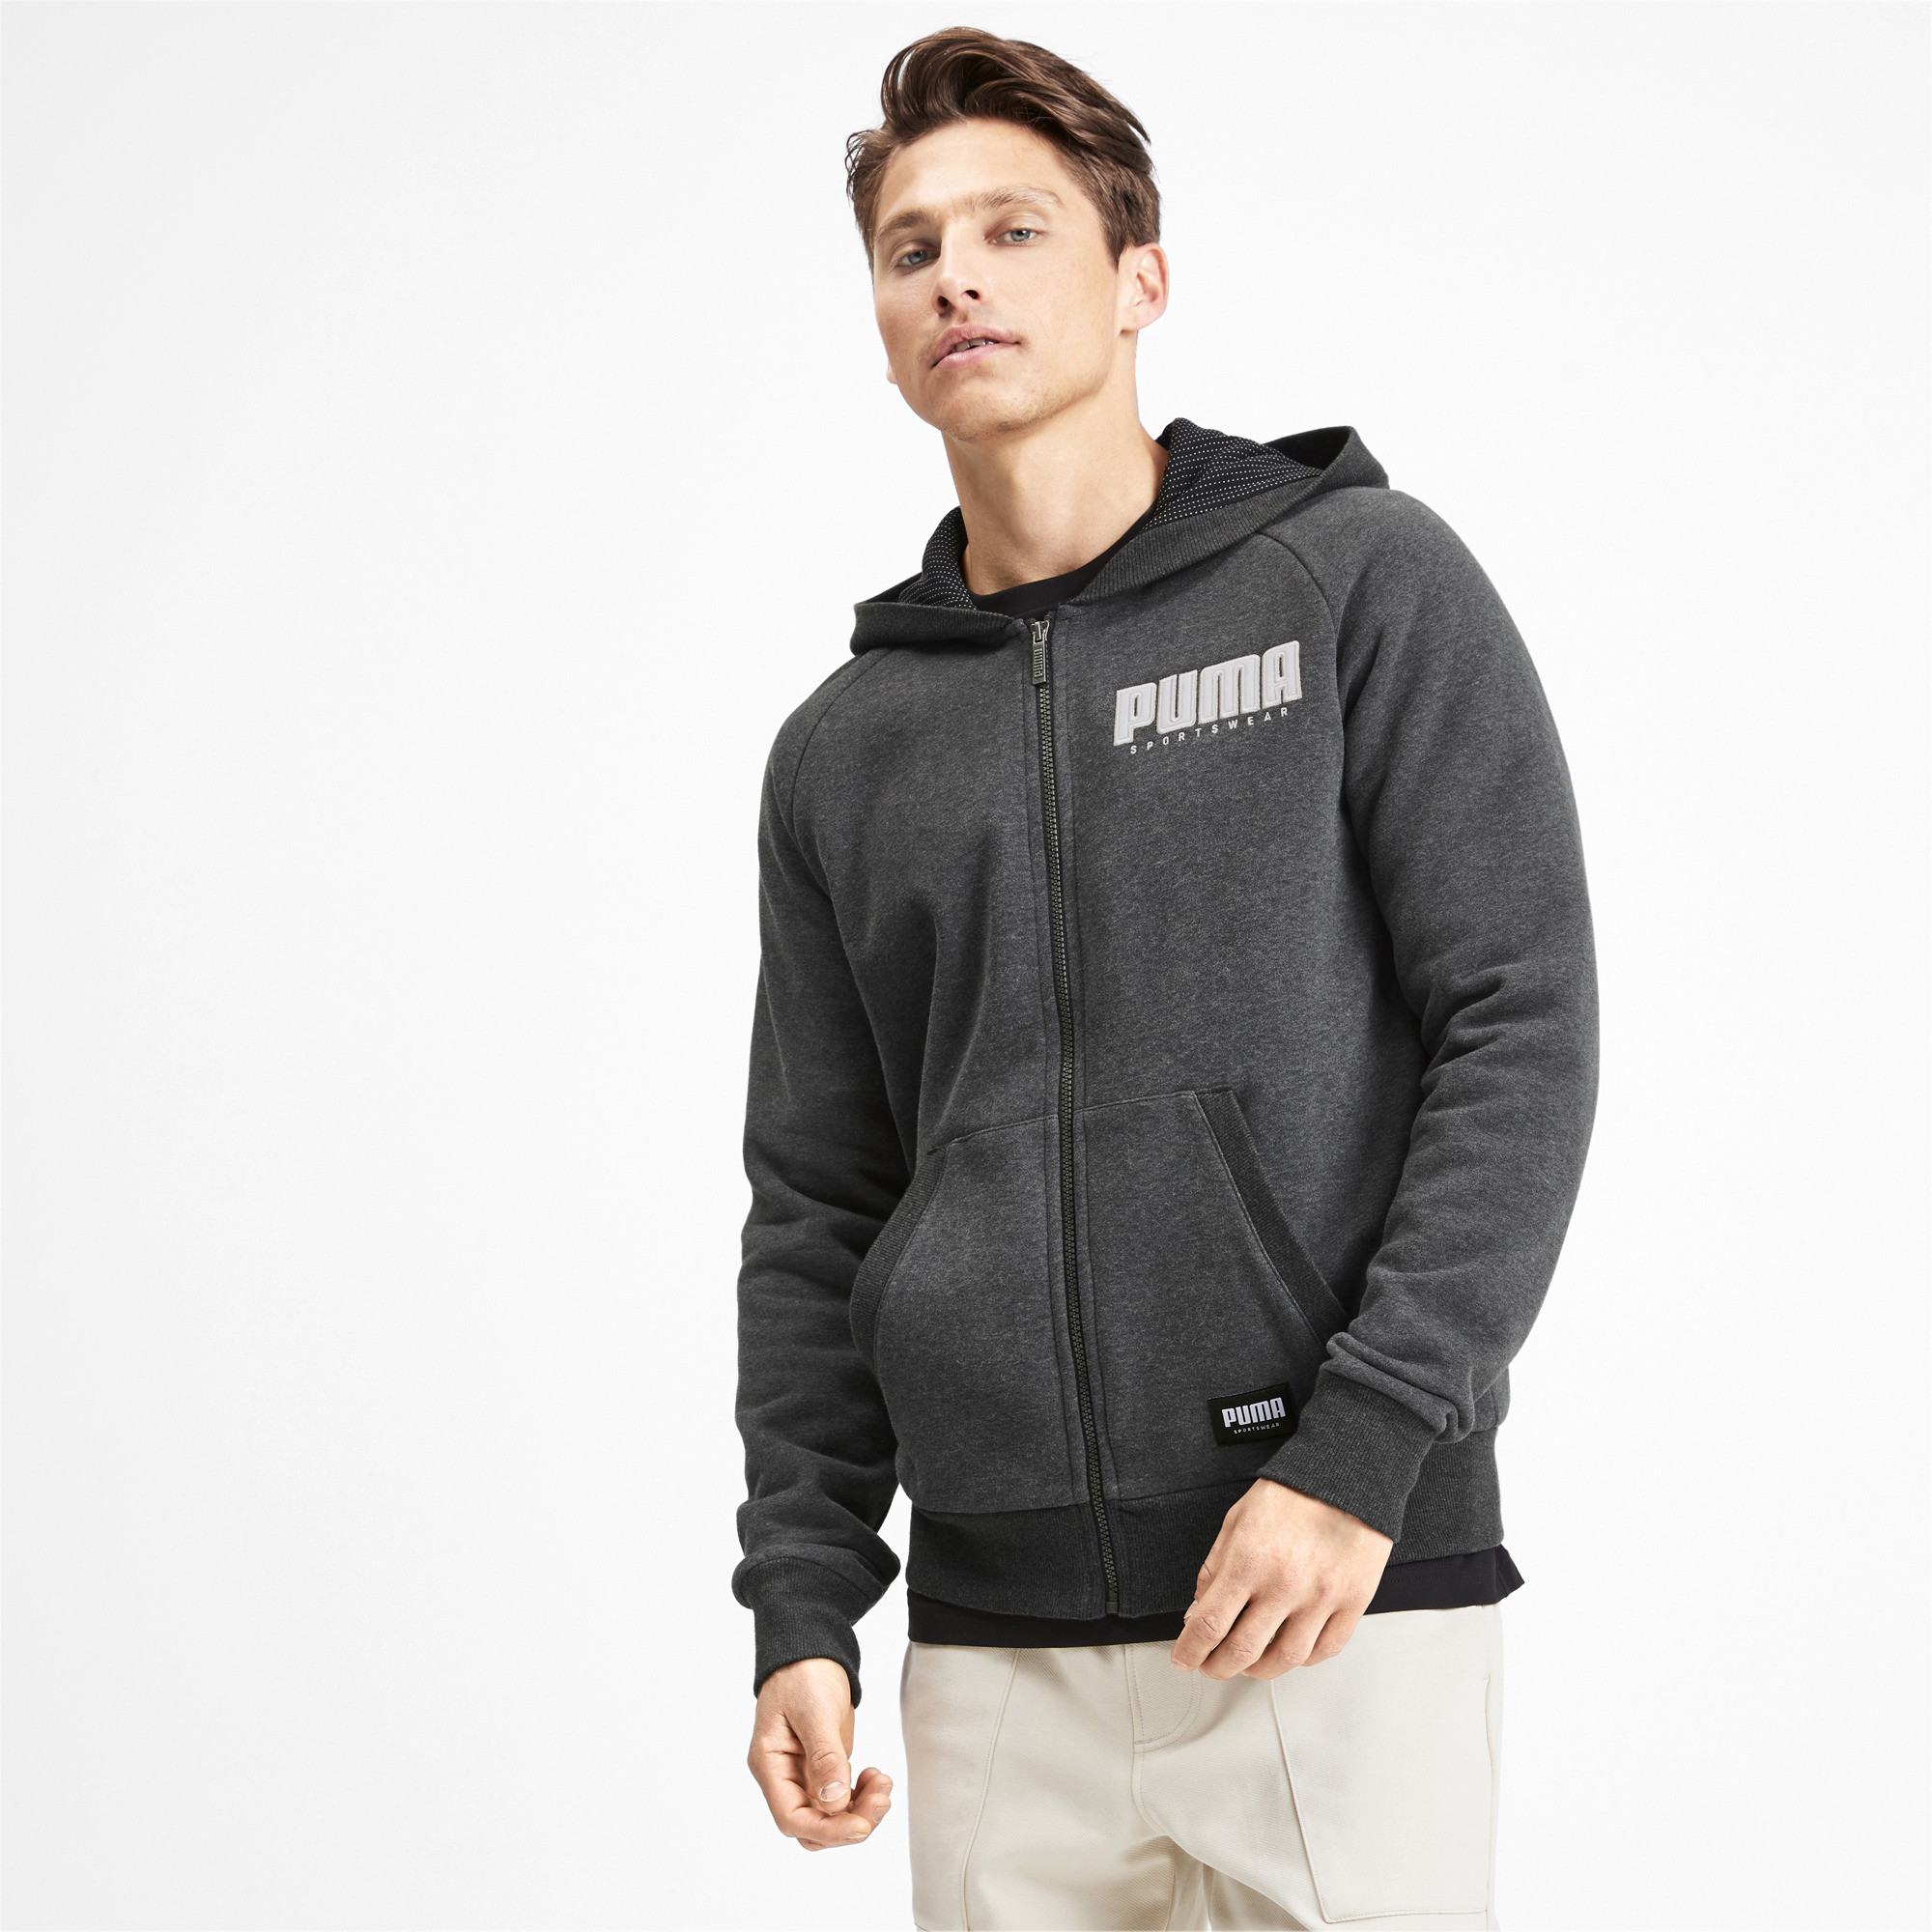 PUMA-Athletics-Men-039-s-Full-Zip-Fleece-Hoodie-Men-Sweat-Basics thumbnail 4